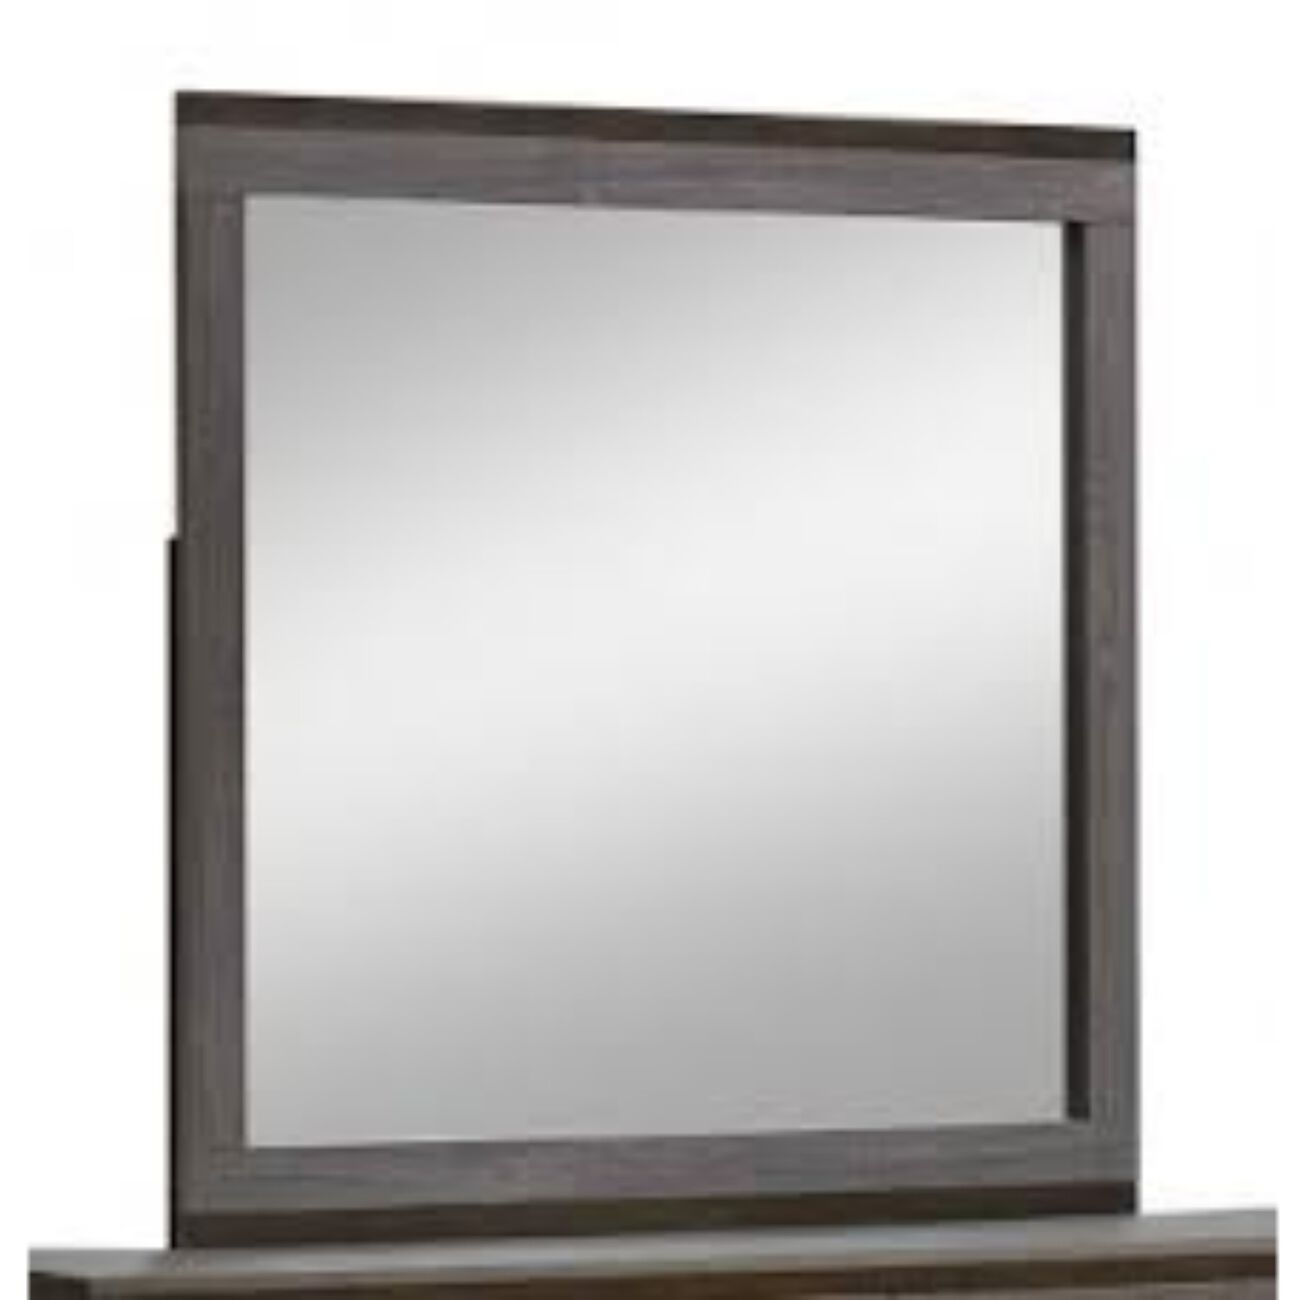 Manvel Contemporary Mirror, Two-Tone Antique Gray